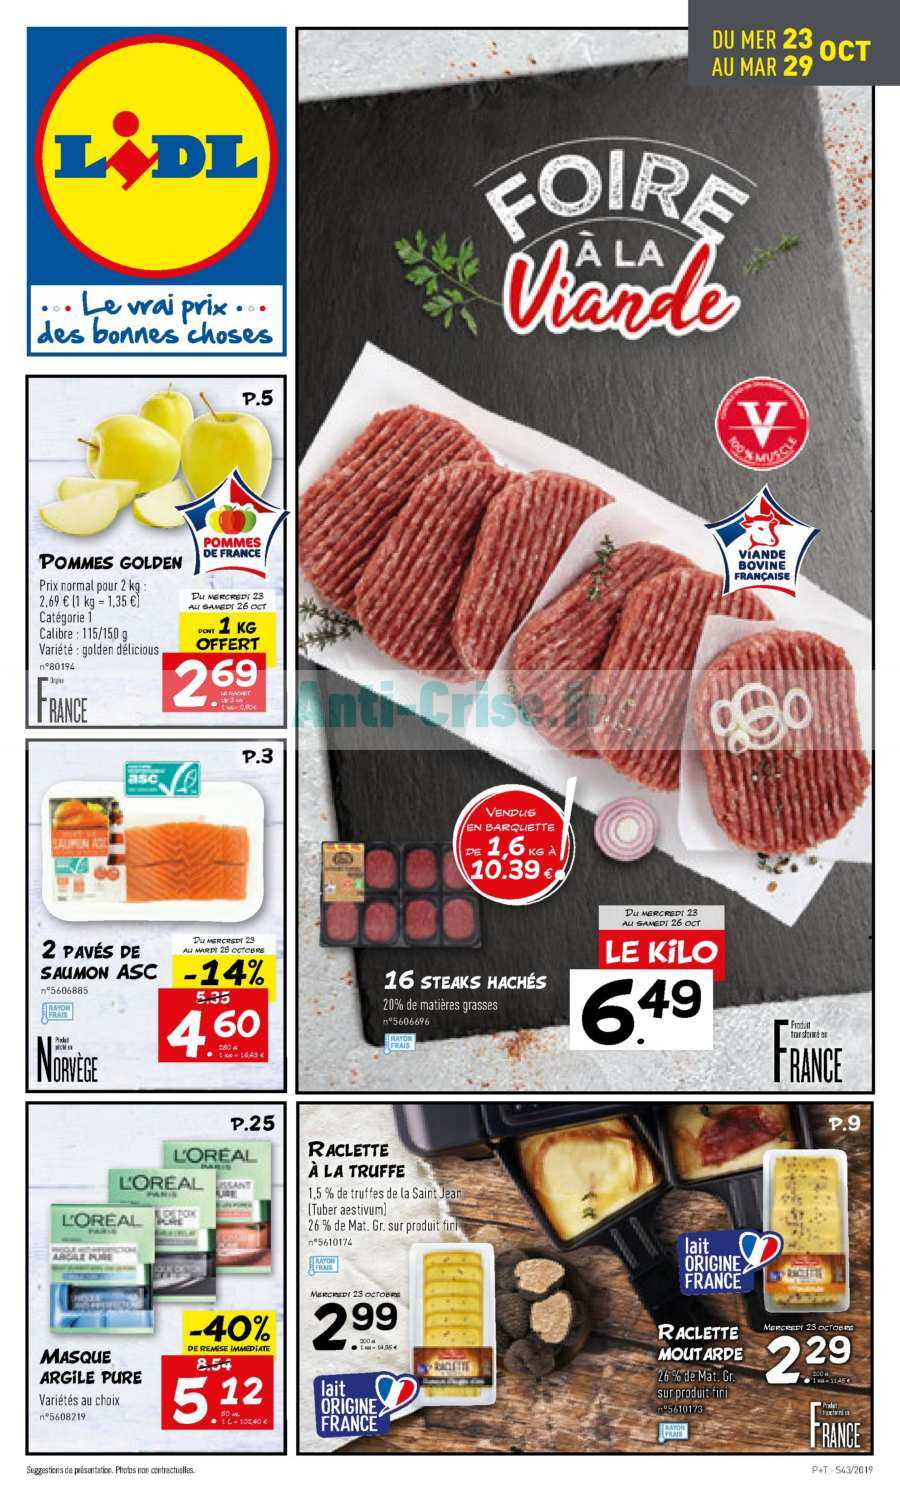 https://media.anti-crise.fr/2019/10/octobre2019lidl2310201929102019S0C0viande-1-180x300.jpg